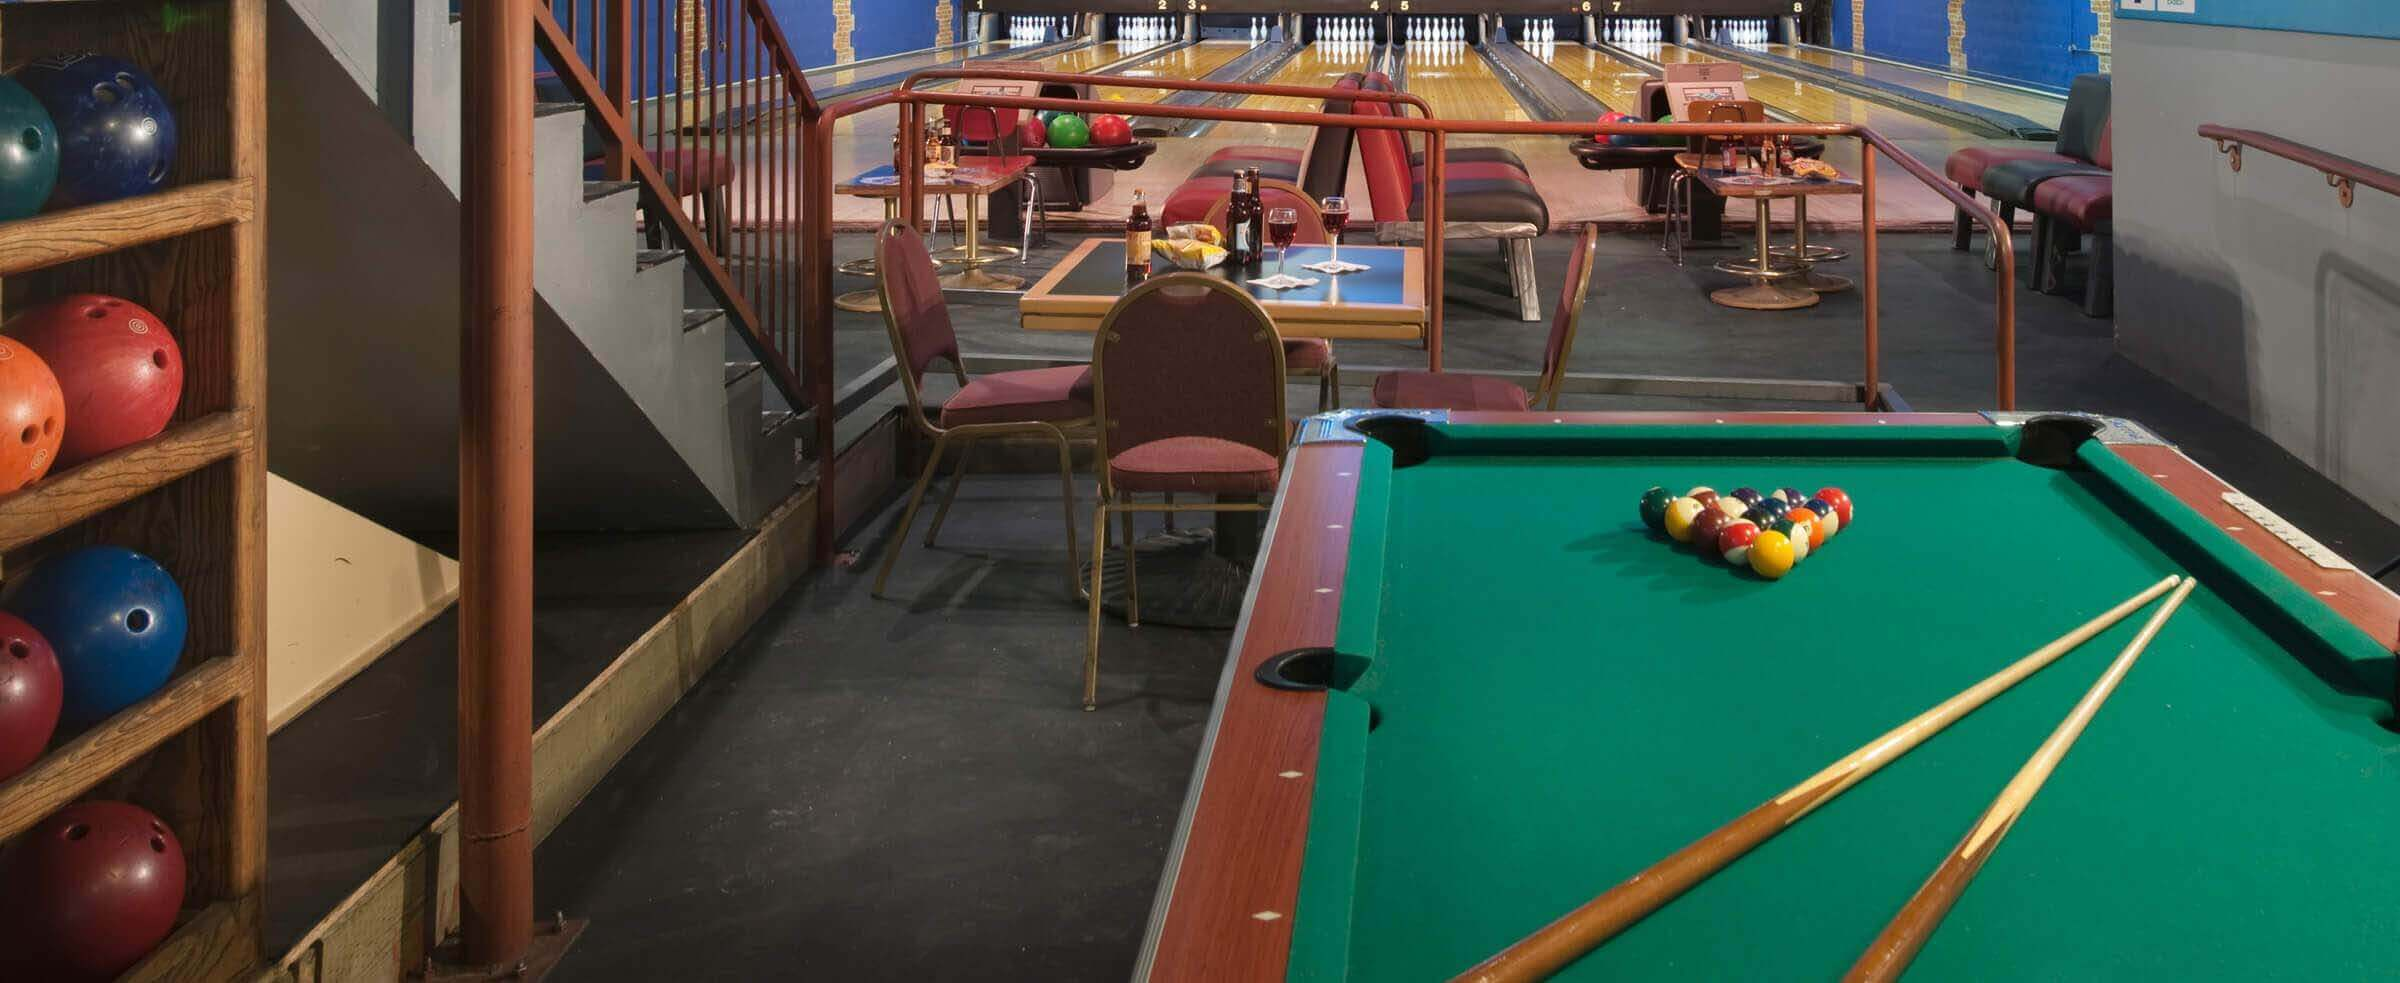 Pool-Table-Englewood